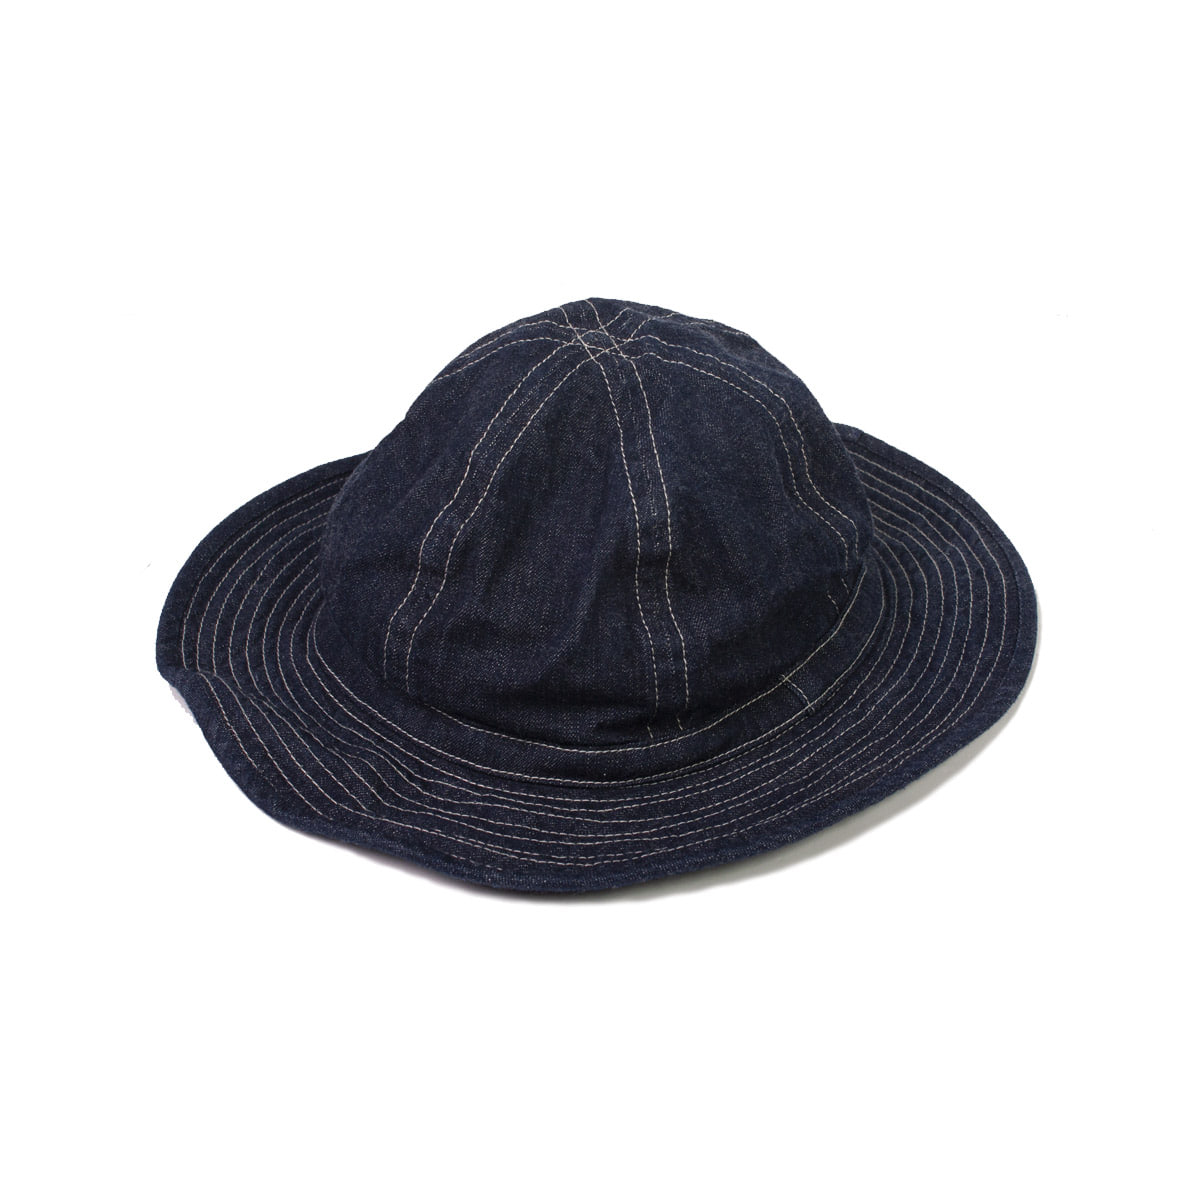 [BUZZ RICKSON'S] WORKING DENIM HAT 'NAVY'